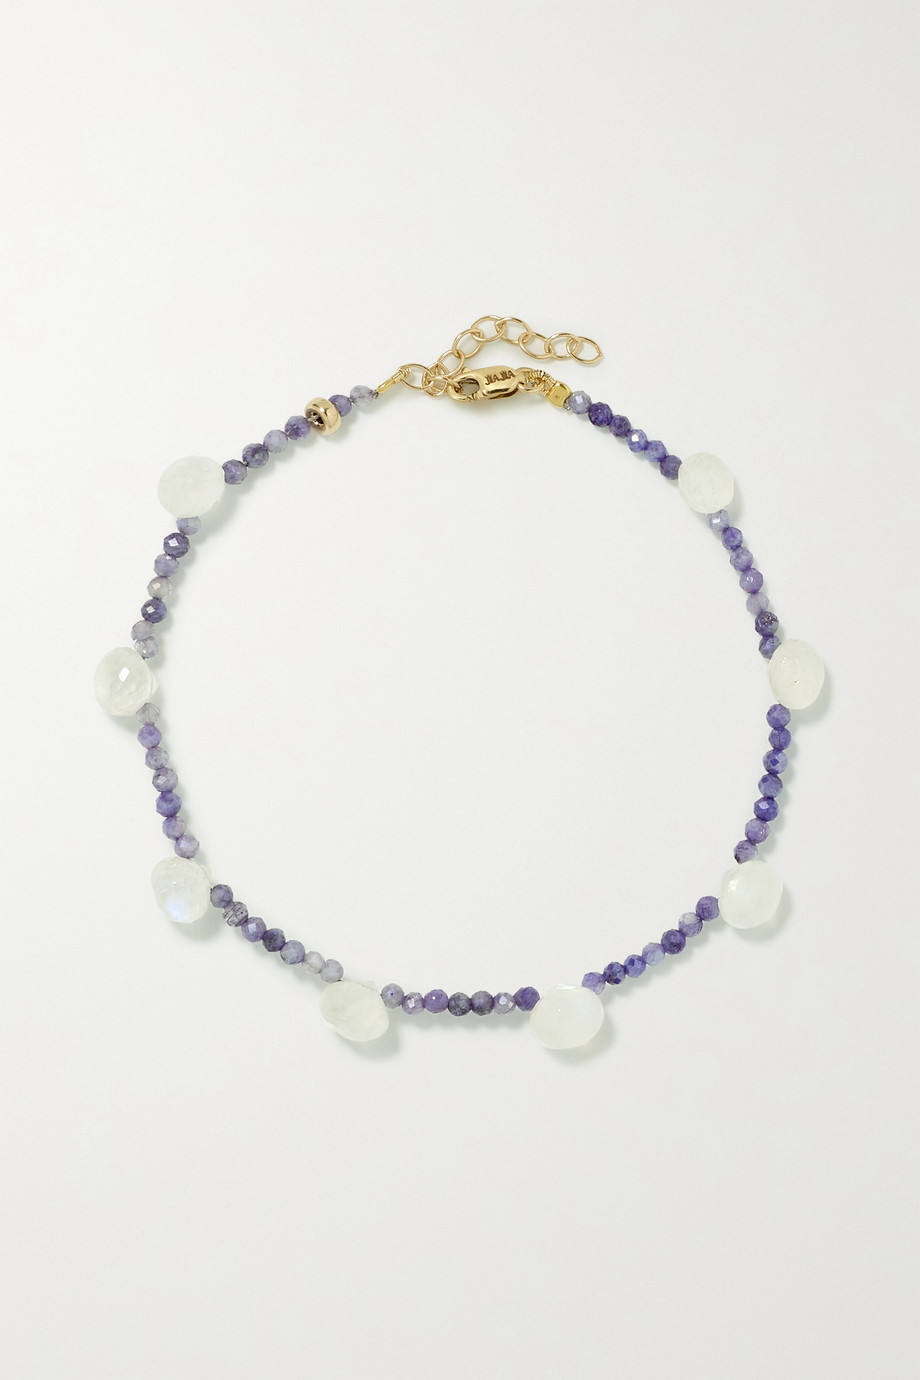 JIA JIA Gold, silverite and moonstone bracelet